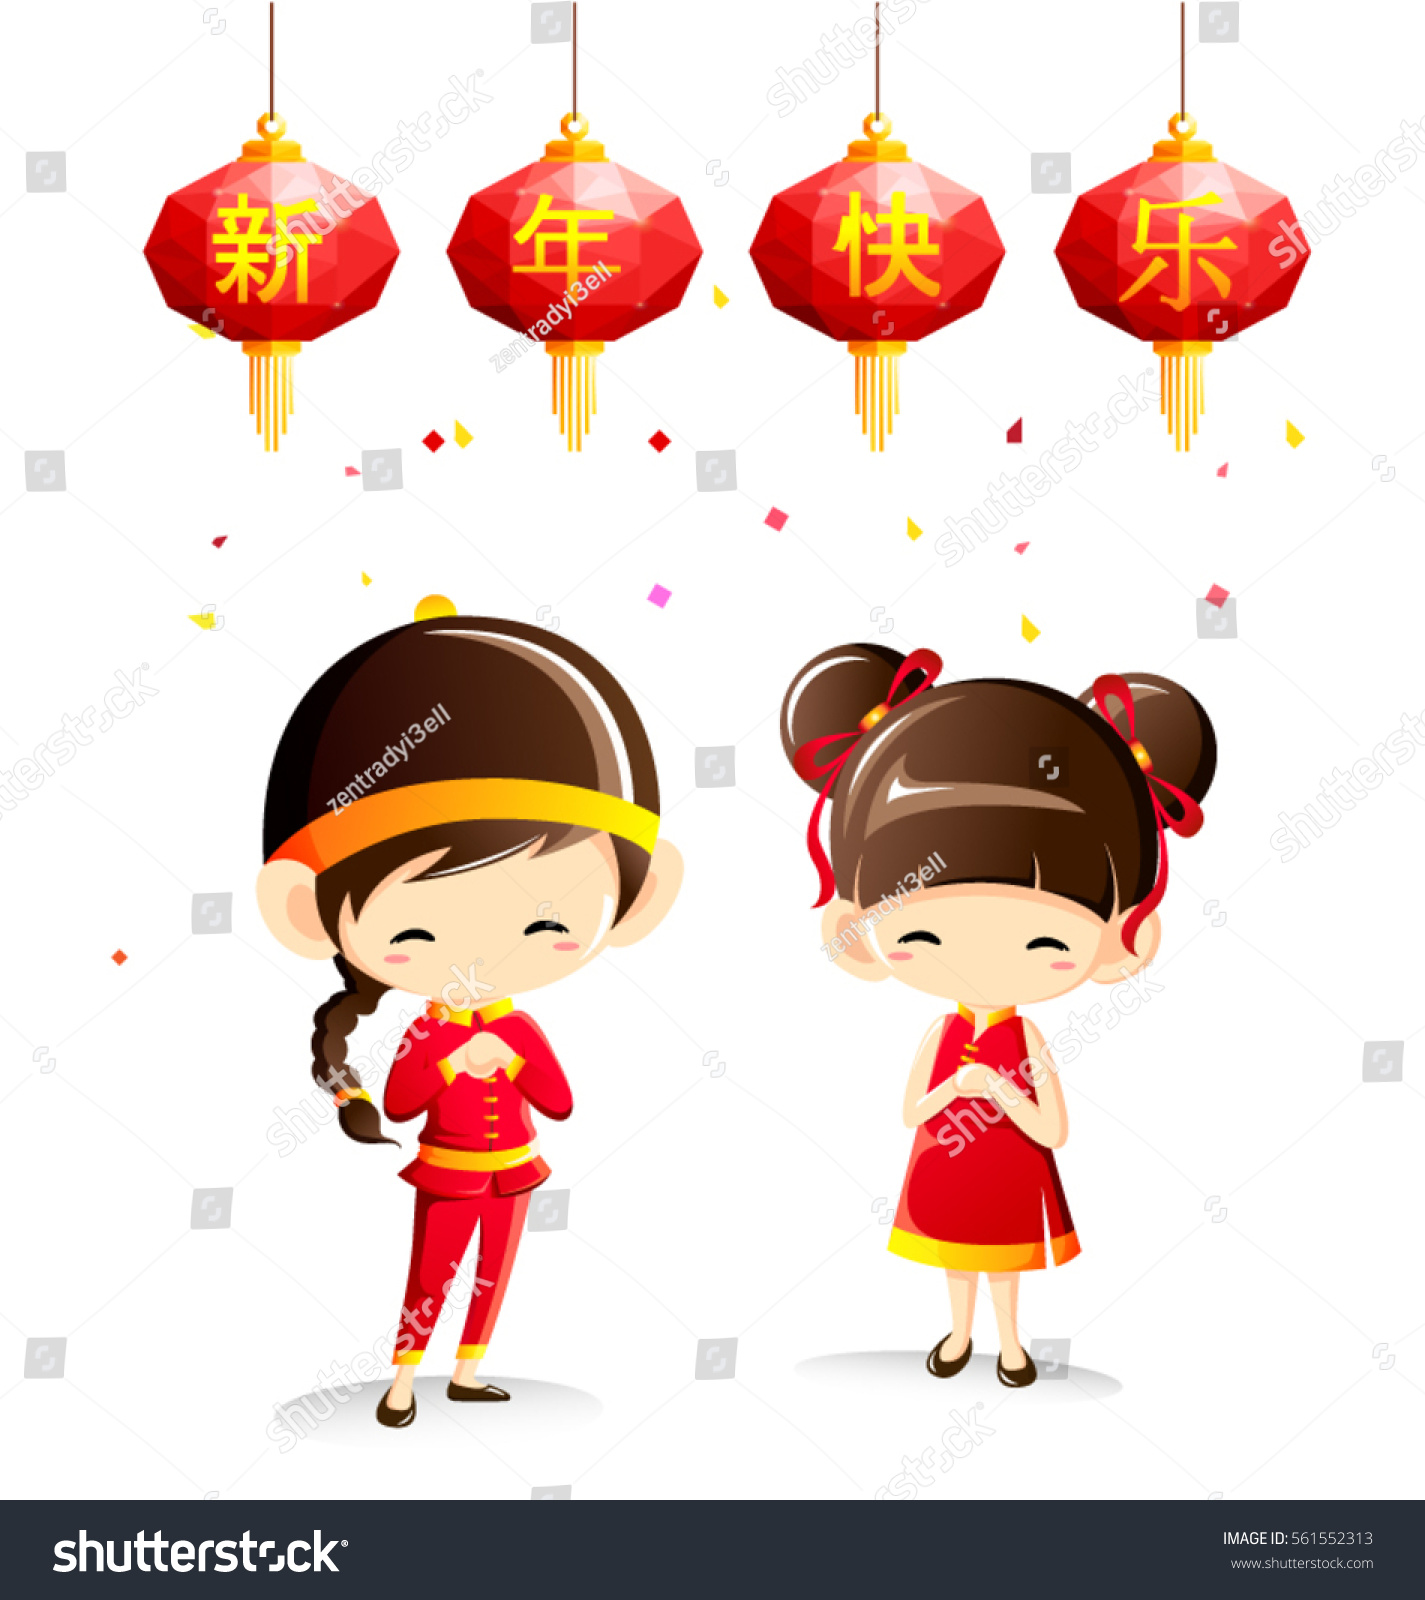 Chinese new year greeting card children stock vector 561552313 chinese new year greeting card with children boy and girl in cute traditional costume vector kristyandbryce Gallery